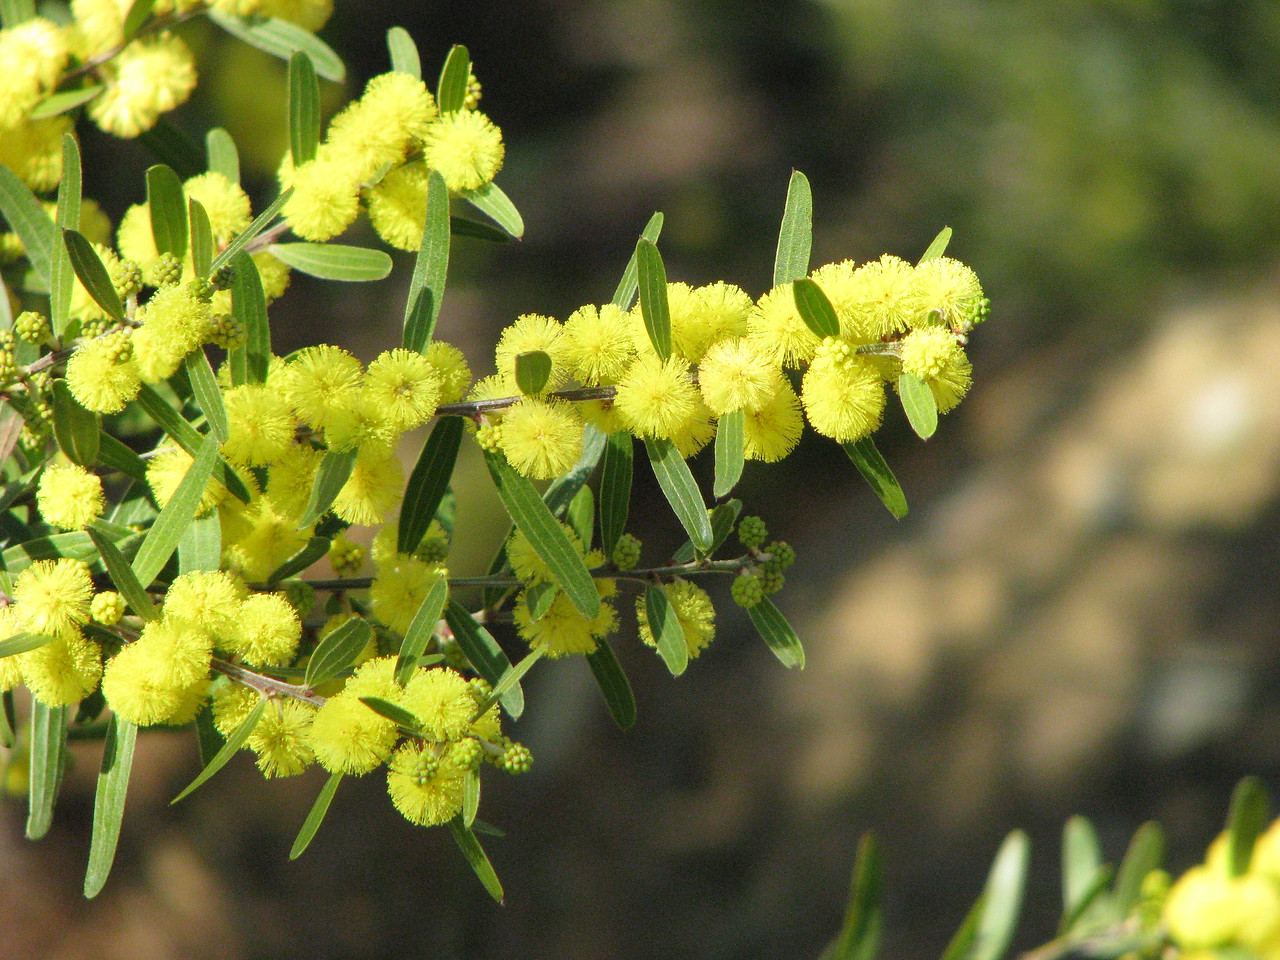 Acacia rostriformis (was included in A. verniciflua) - leaf and flower